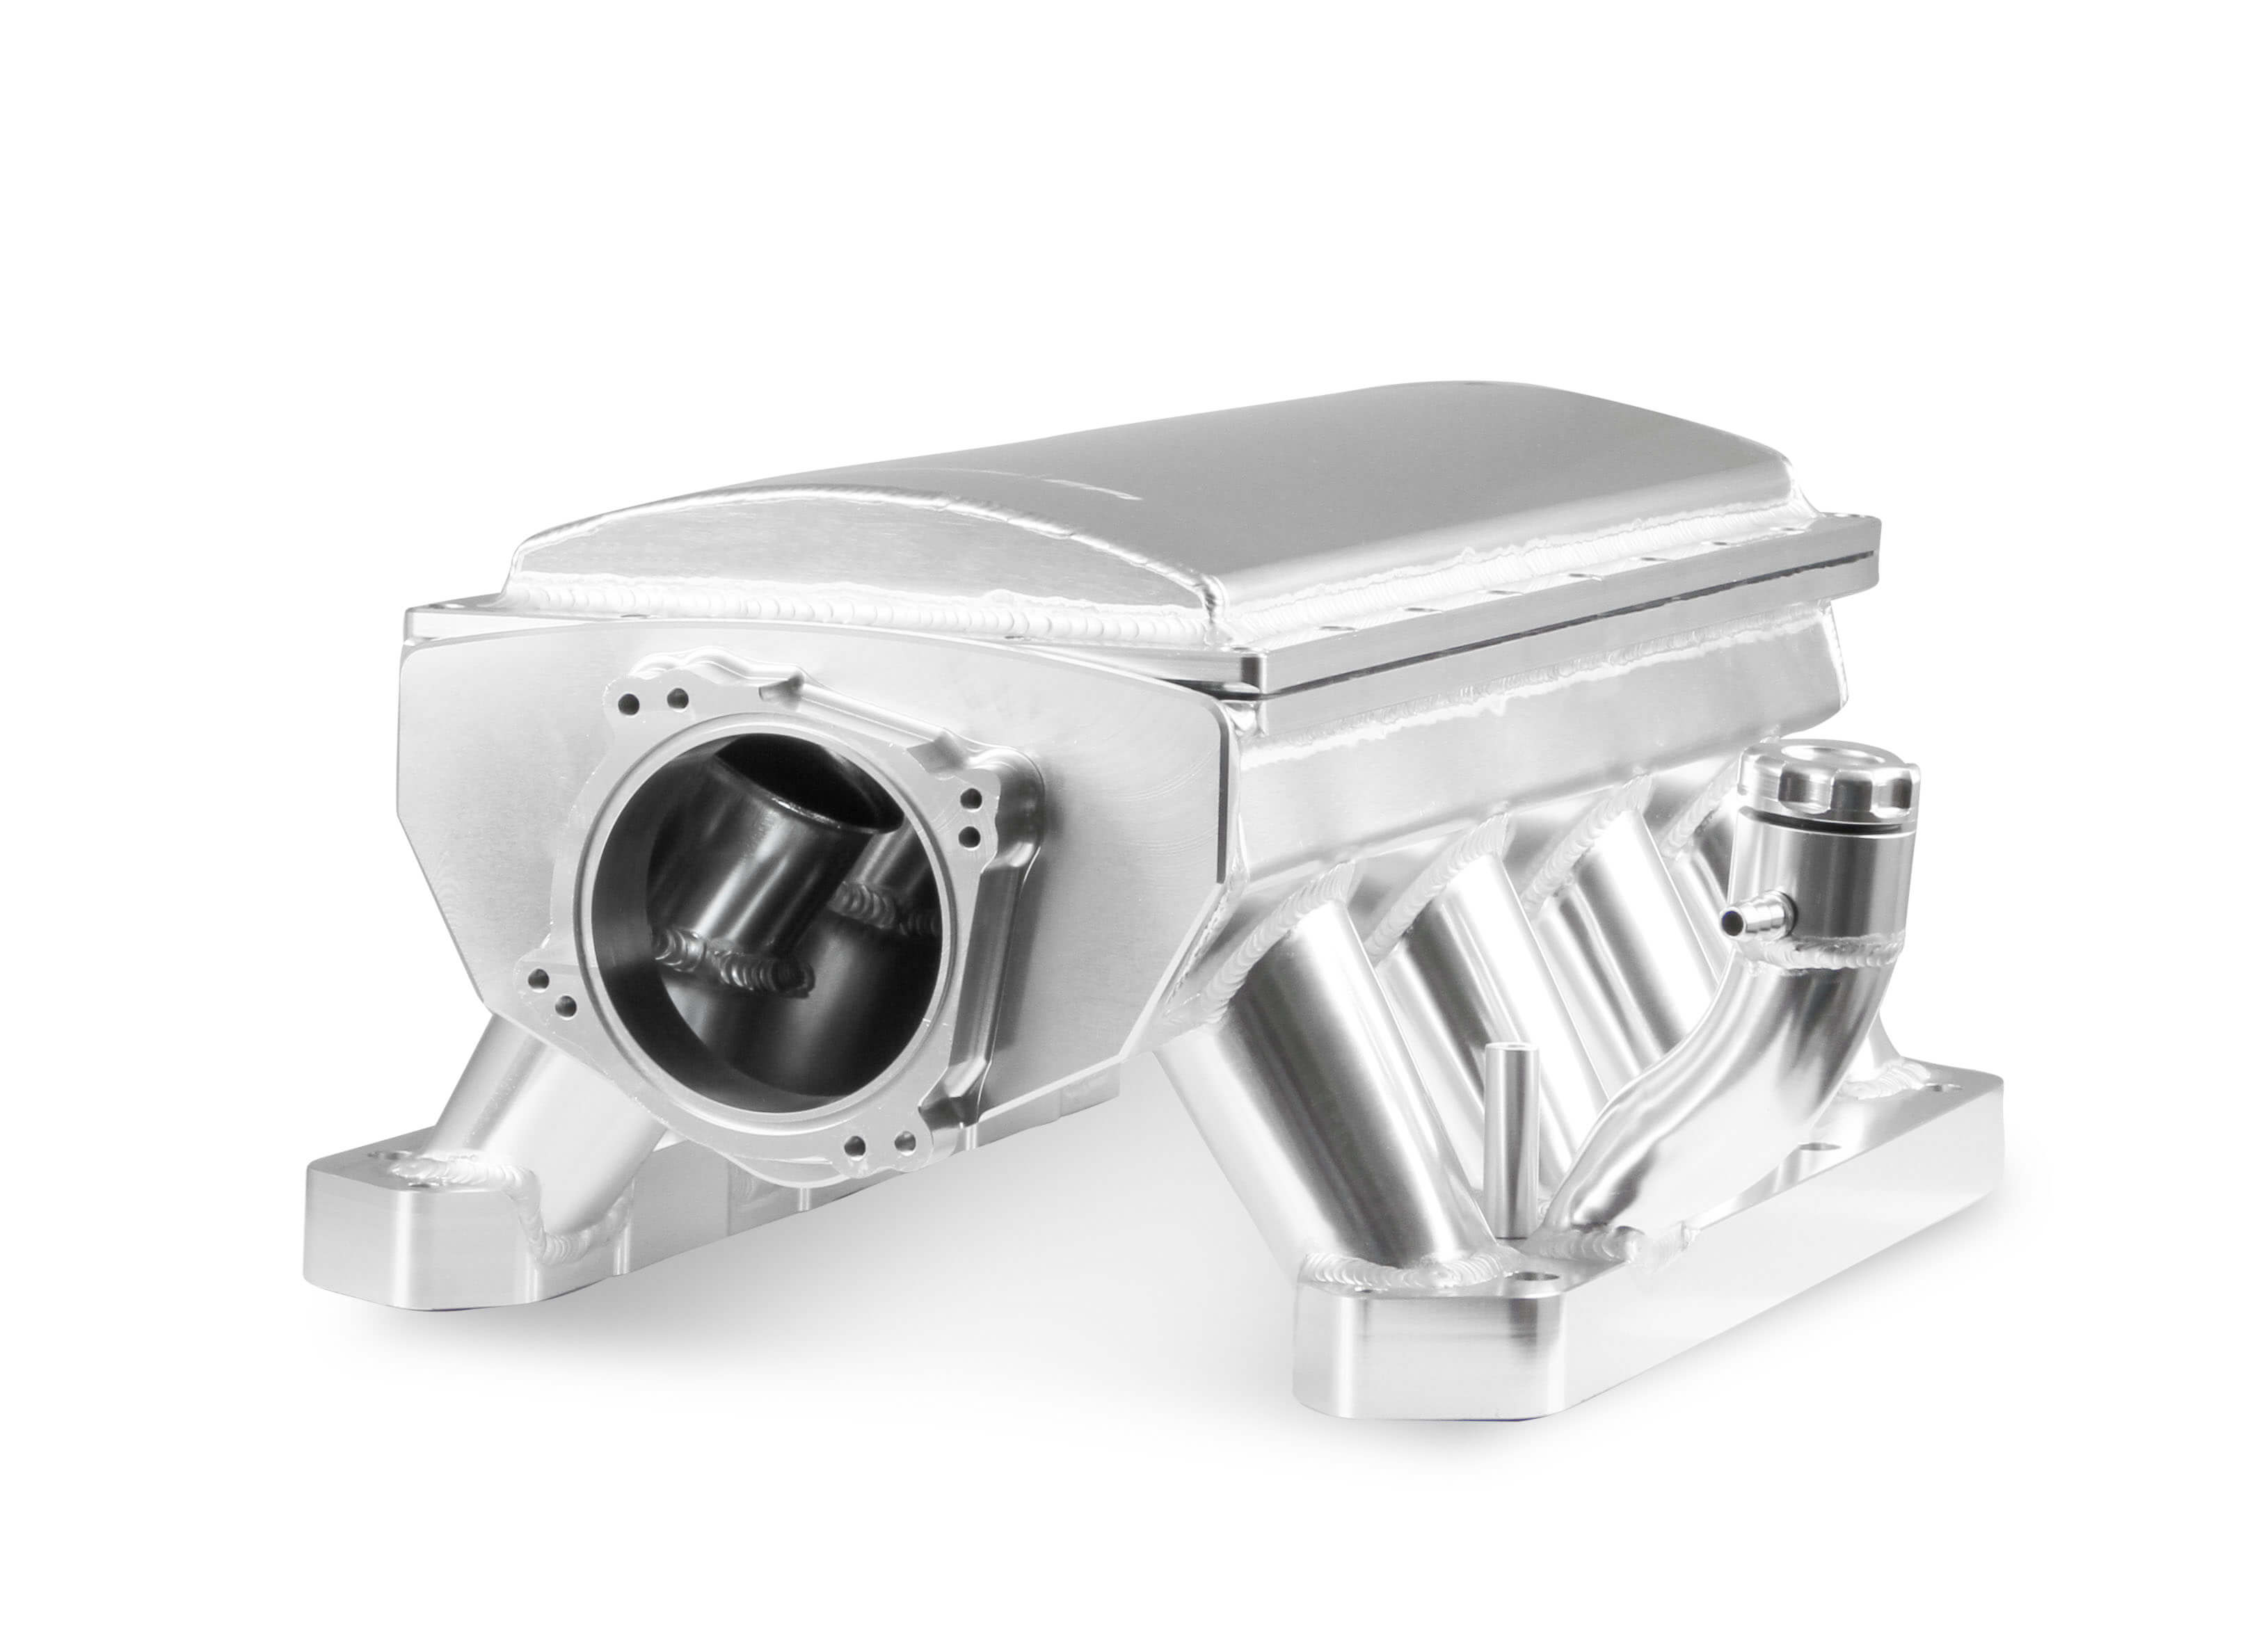 Holley Sniper Dodge 5.7L/6.1L/6.4L Hi-Ram 90mm Dual Throttle Body Bolt Pattern Race Series Intake w/Fuel Rail Kit - Silver